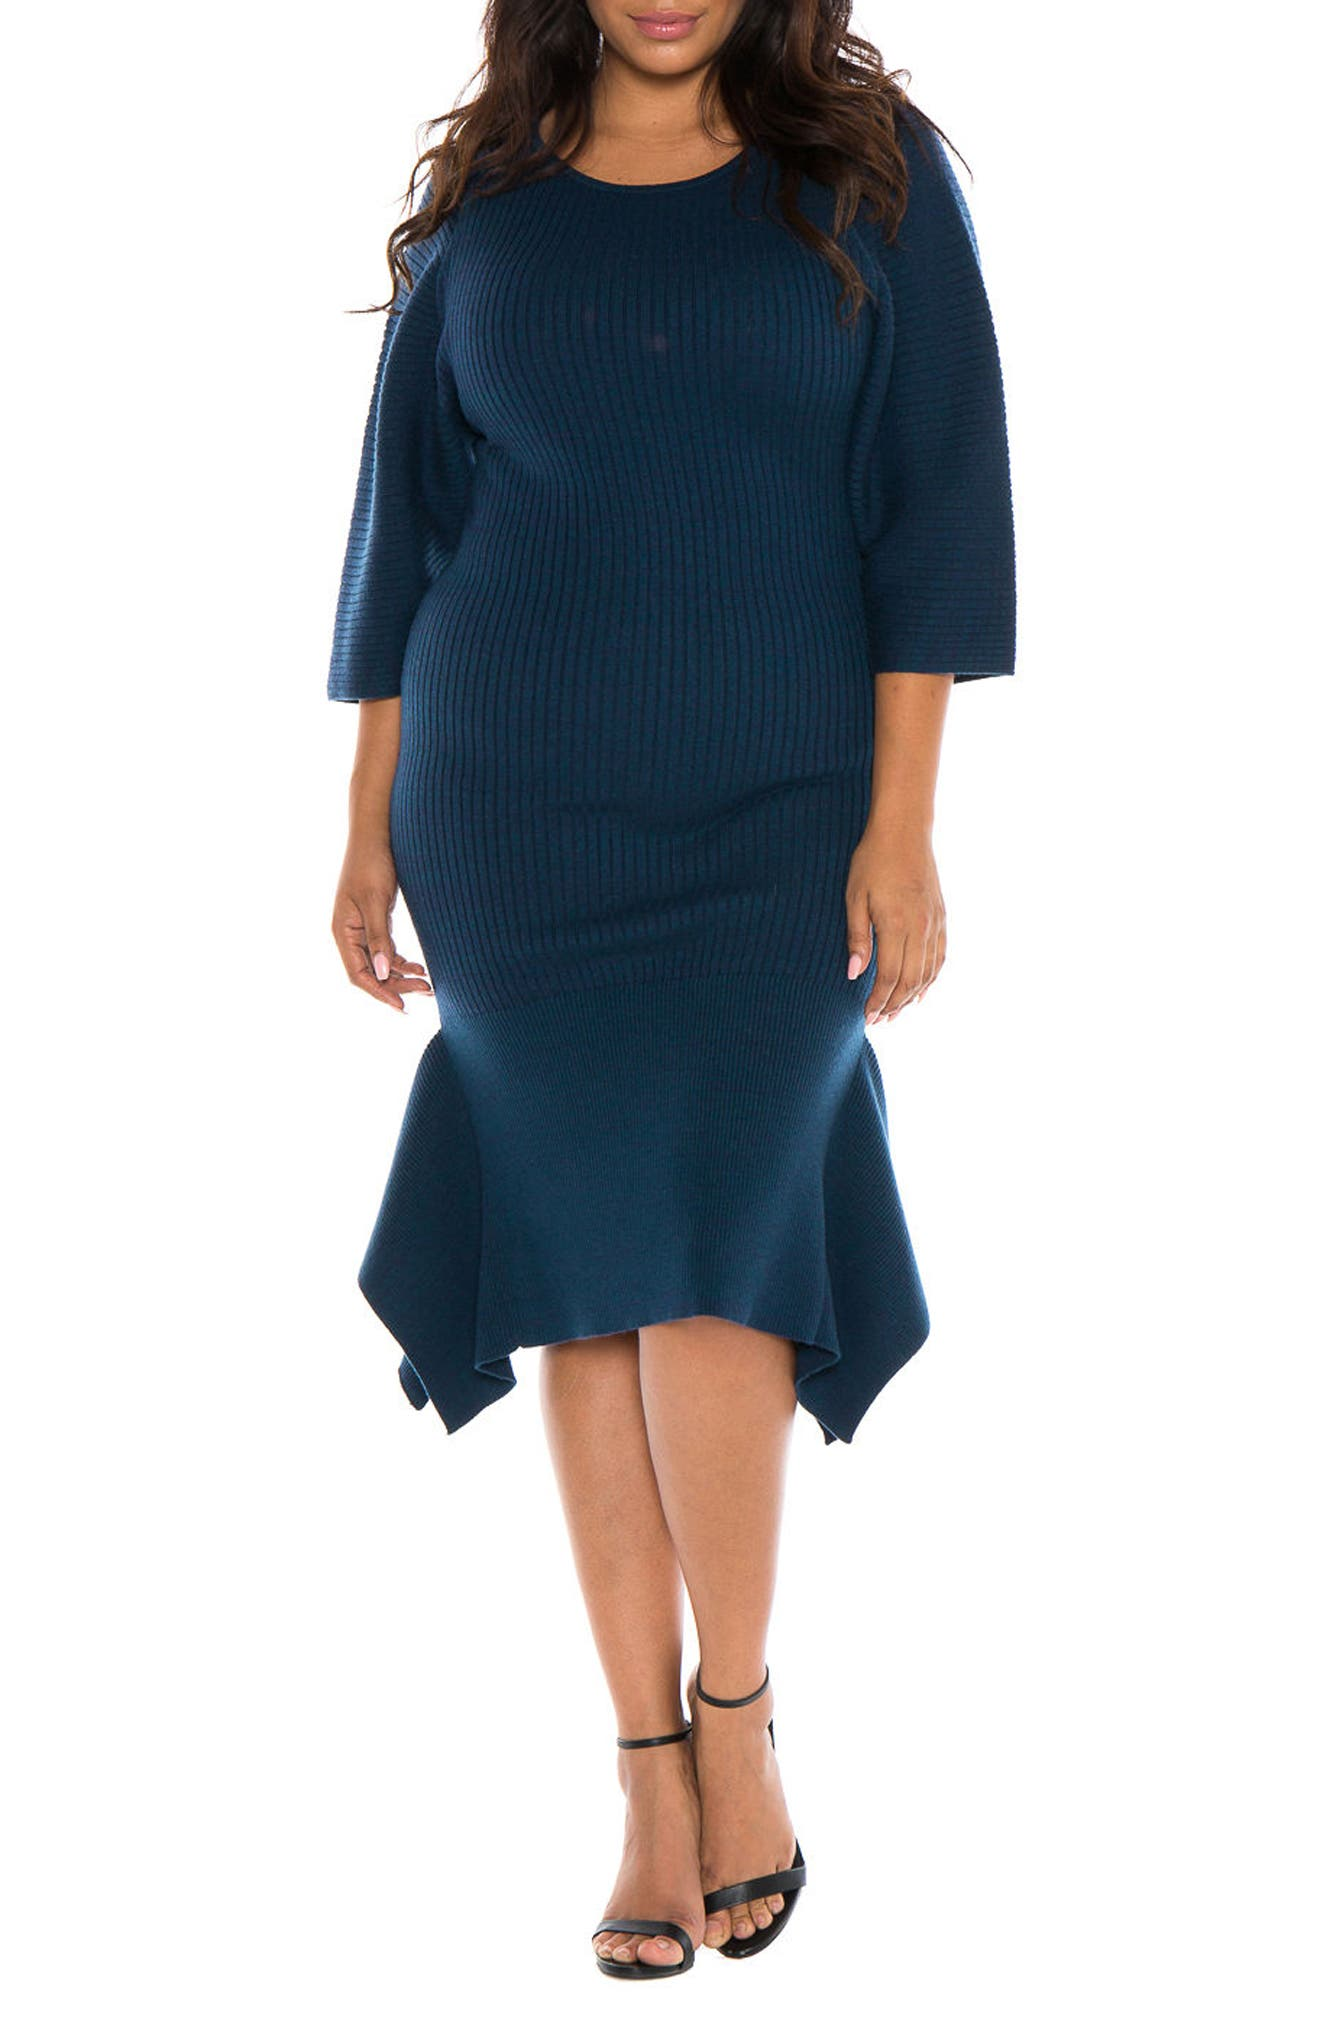 SLINK Jeans Handkerchief Hem Sweater Dress (Plus Size)